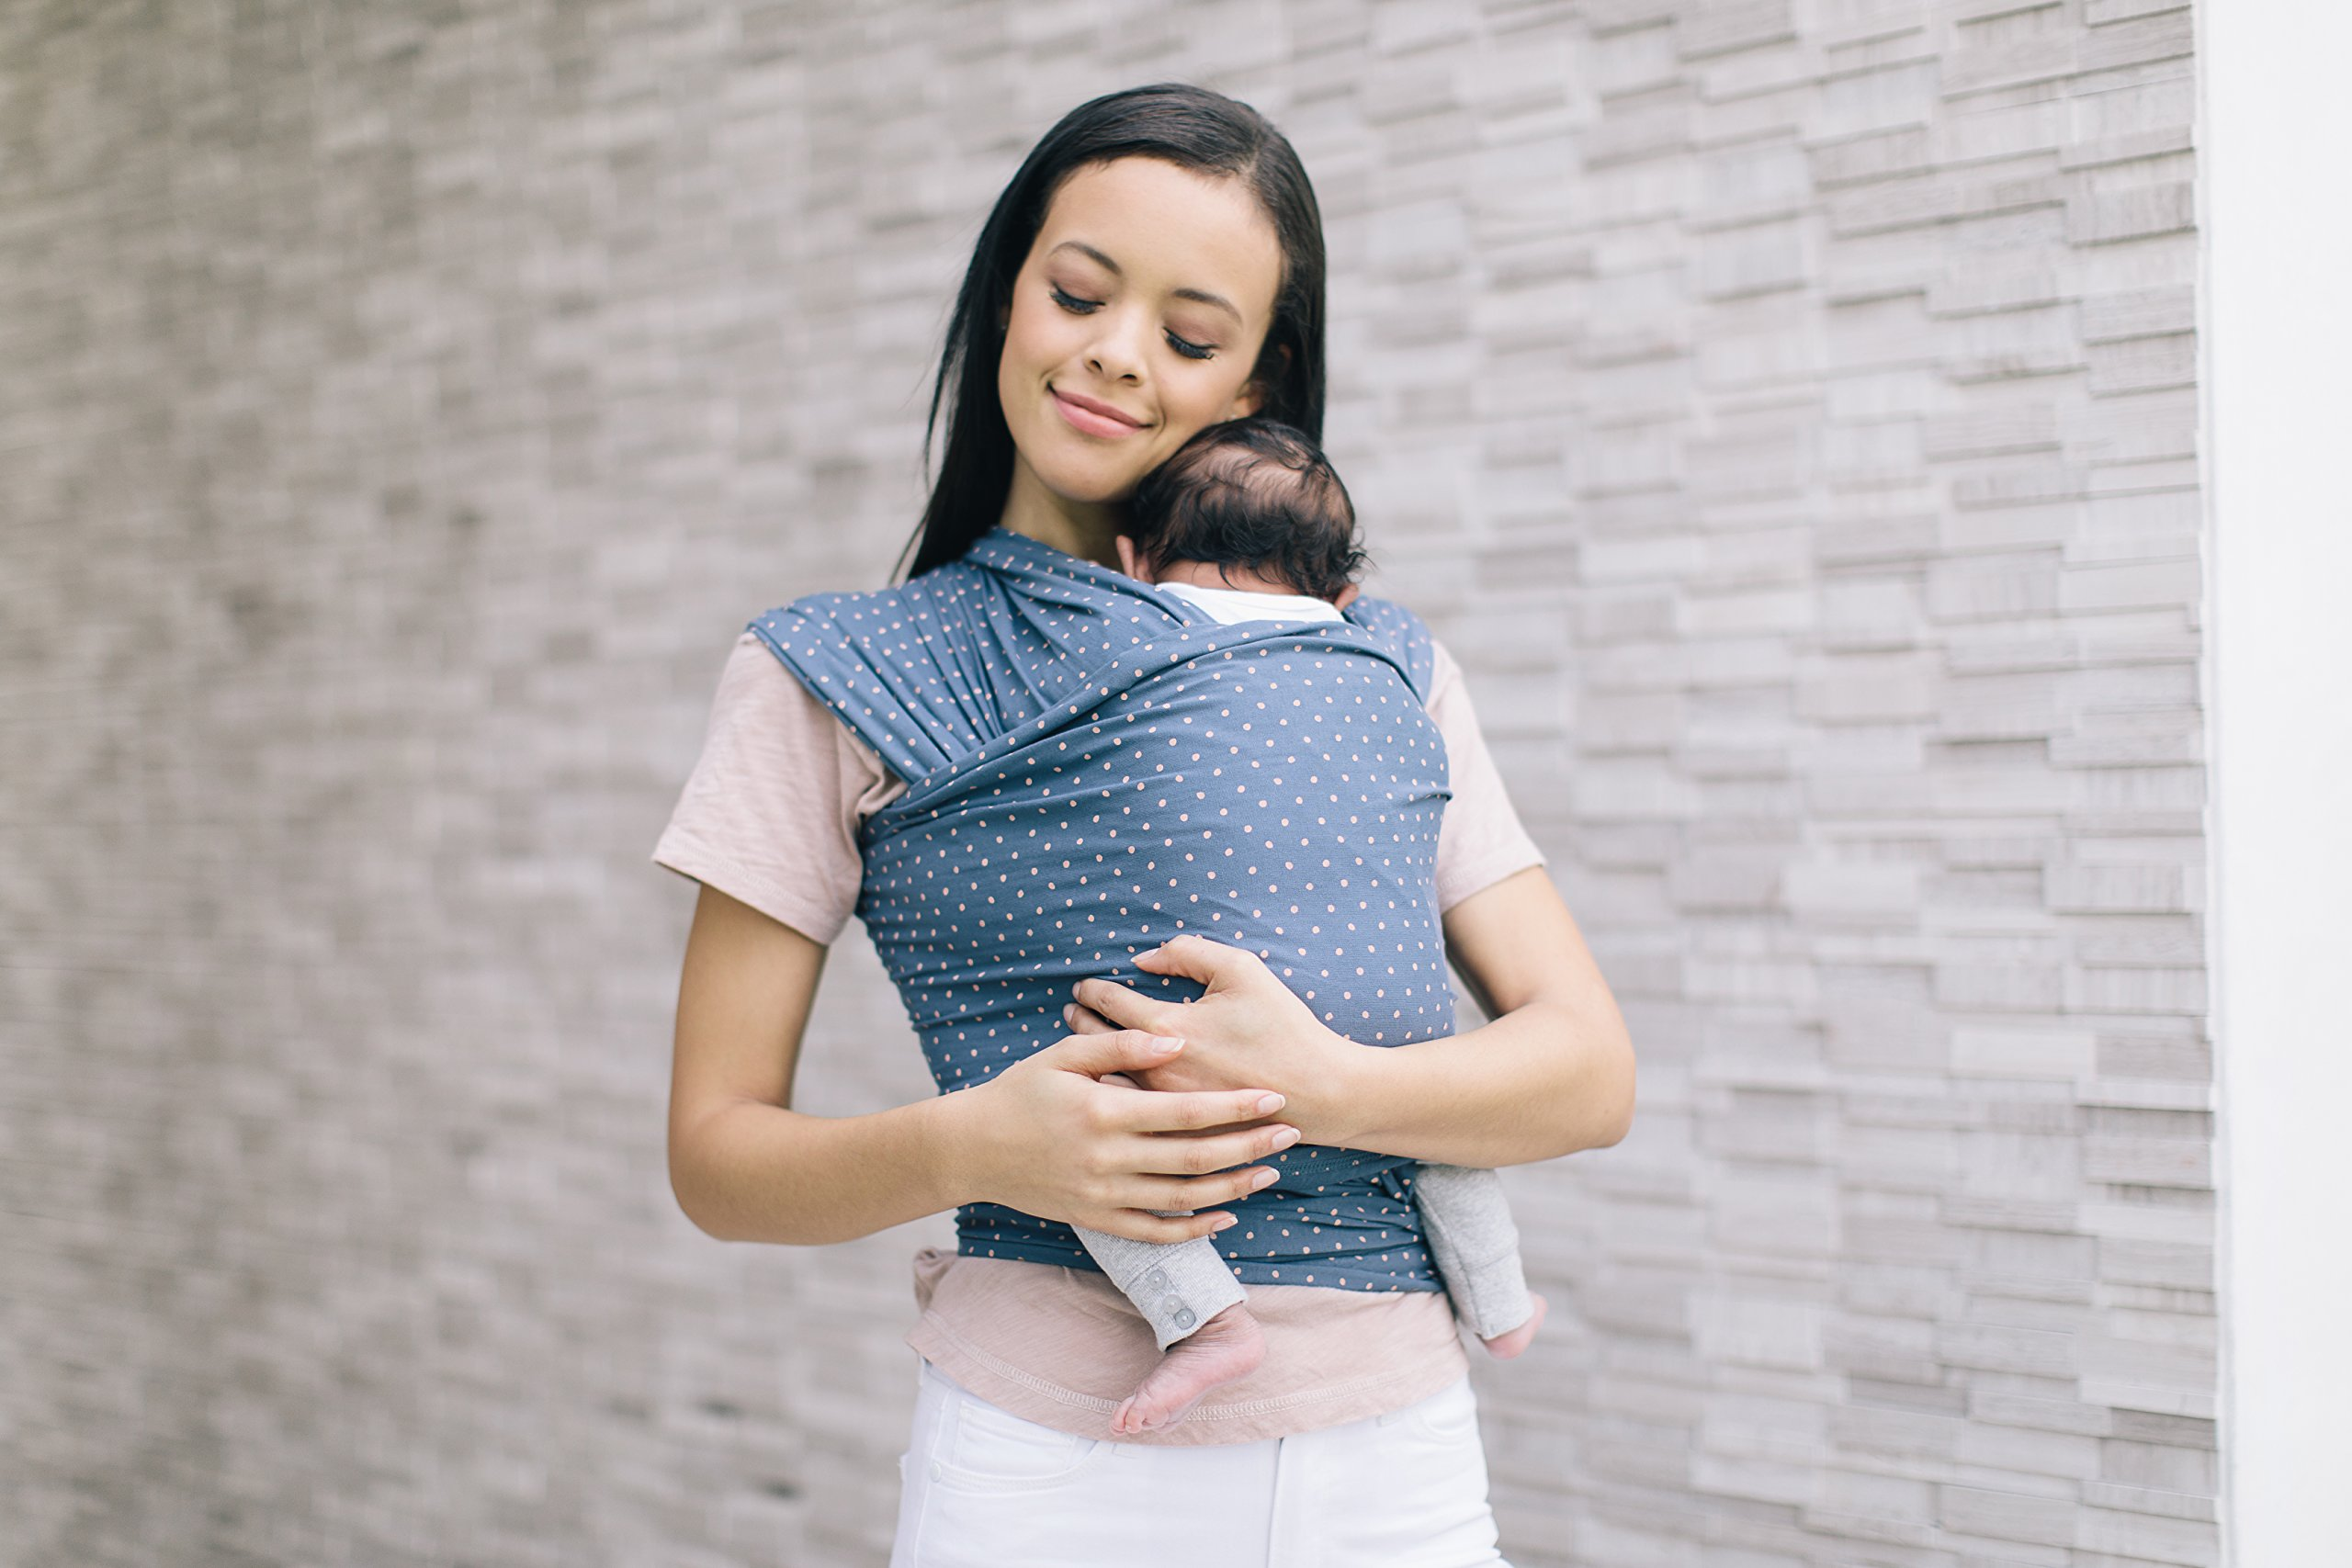 Ergobaby Baby Wrap Carrier for Newborn to Toddler up to 11kg, Coral Dots Baby Sling from Birth Breathable Stretchy made from 100% Viscose, Unisex Ergobaby Baby Wrap carrier for newborns, from birth up to 11.3 kg (25 lbs). Stretchy fabric with guiding edge makes it easier to tie, ideal for beginners. The wrap supports your baby in the ergonomic frog-leg position.  Soft and gentle on baby's delicate skin. Suitable for breastfeeding whilst carrying. Comfortable due to even weight distribution on back and hips. 2